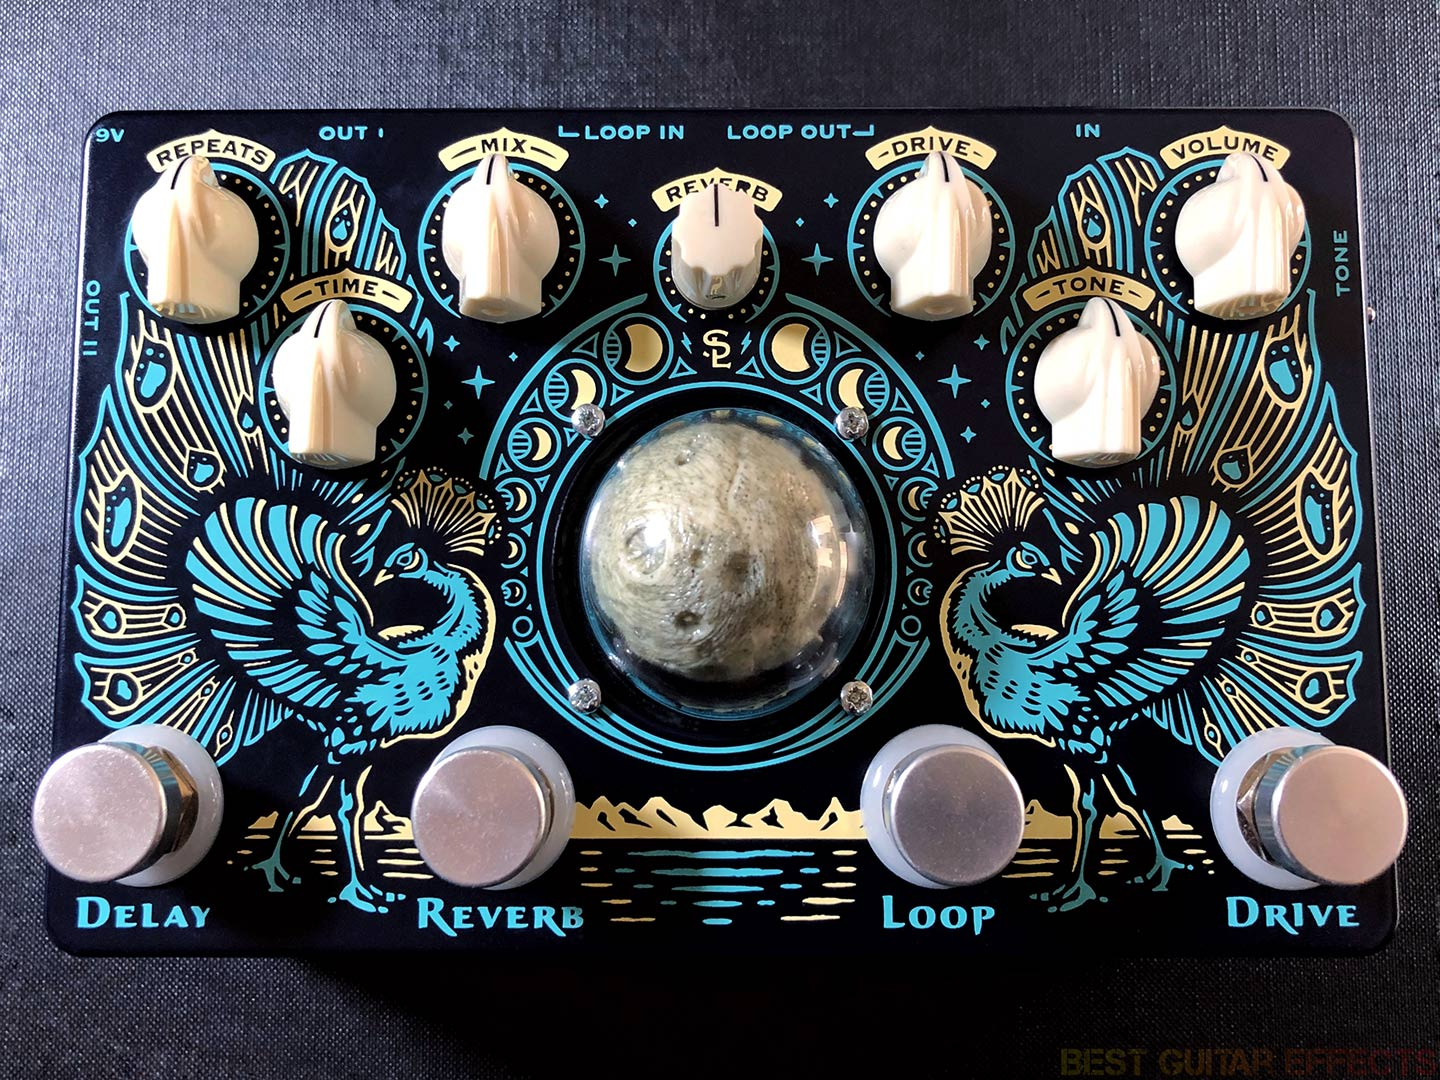 Top Best Guitar Effects Pedals Meter Counter Gt Delay Circuits Circuit Of A Multi Level Builder Dr No Pedal Moon Canyon Effect Types Reverb Overdrive